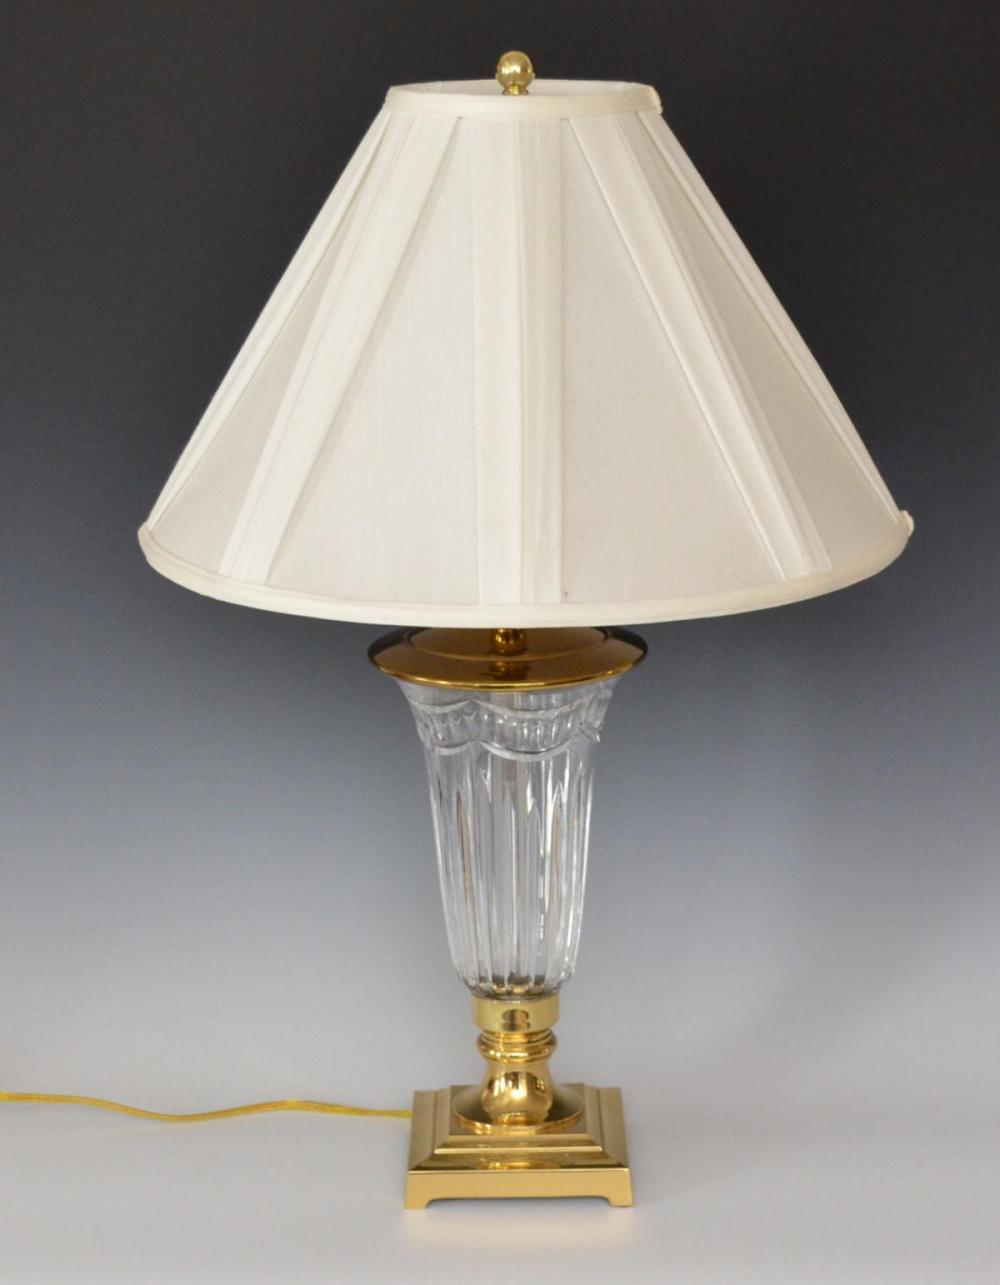 Stunning Waterford Crystal Table Lamp